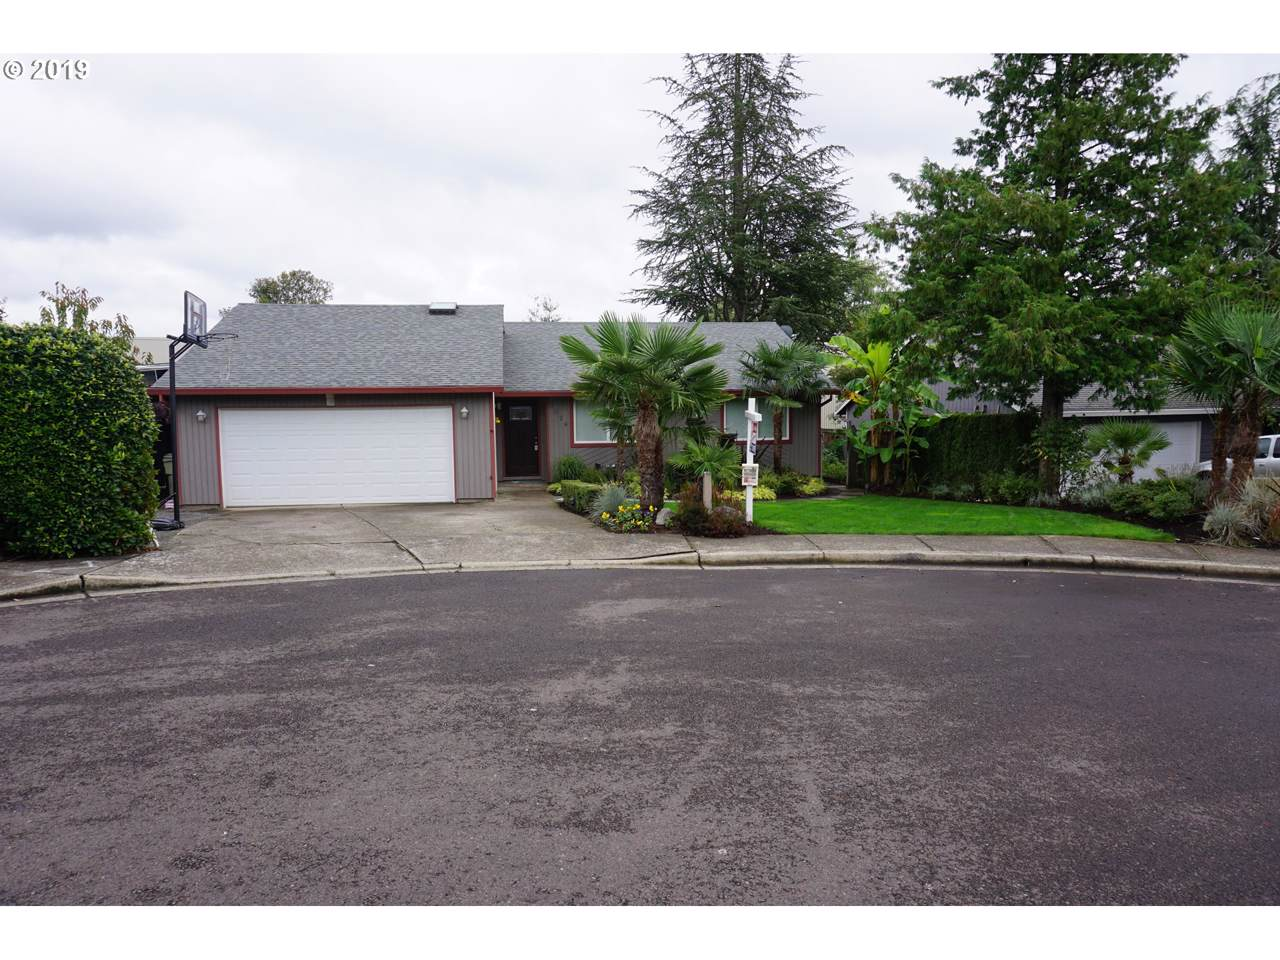 3624 196TH Ave - Photo 1